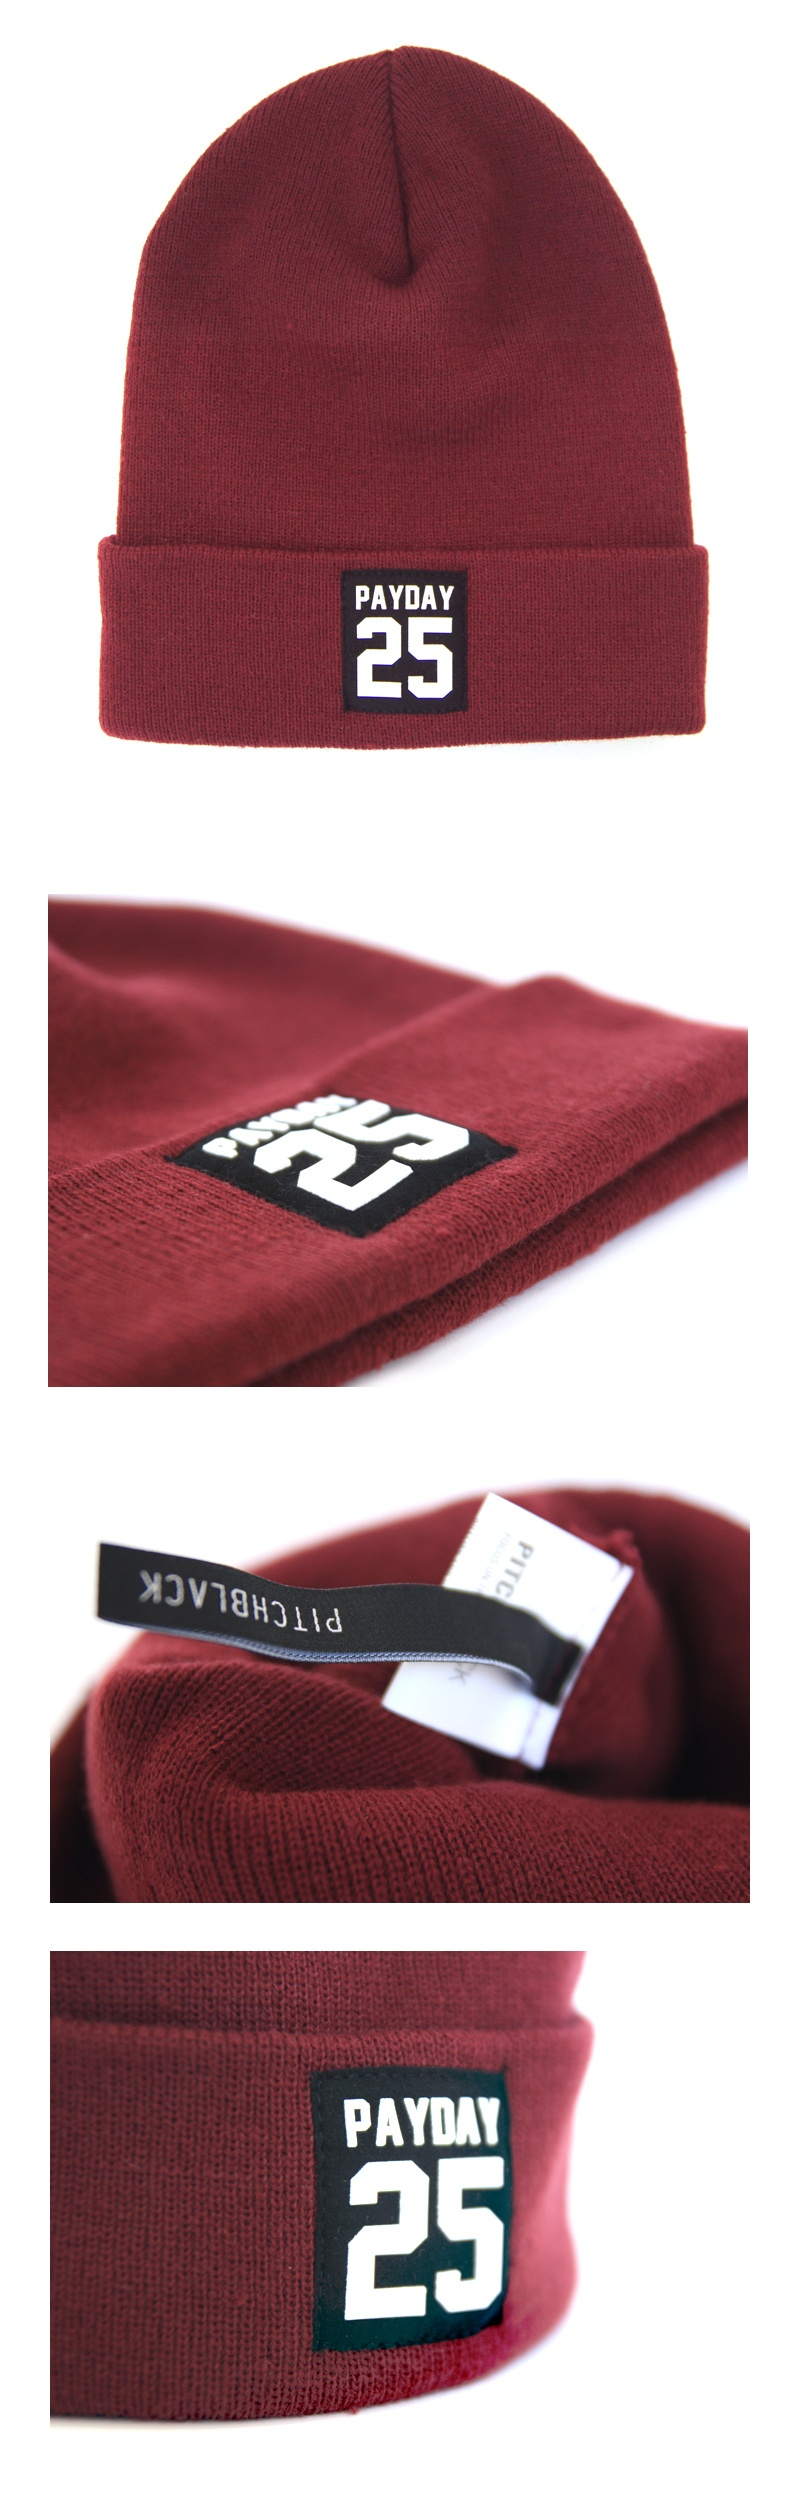 BIG LABEL BEANIE-02-WN.jpg